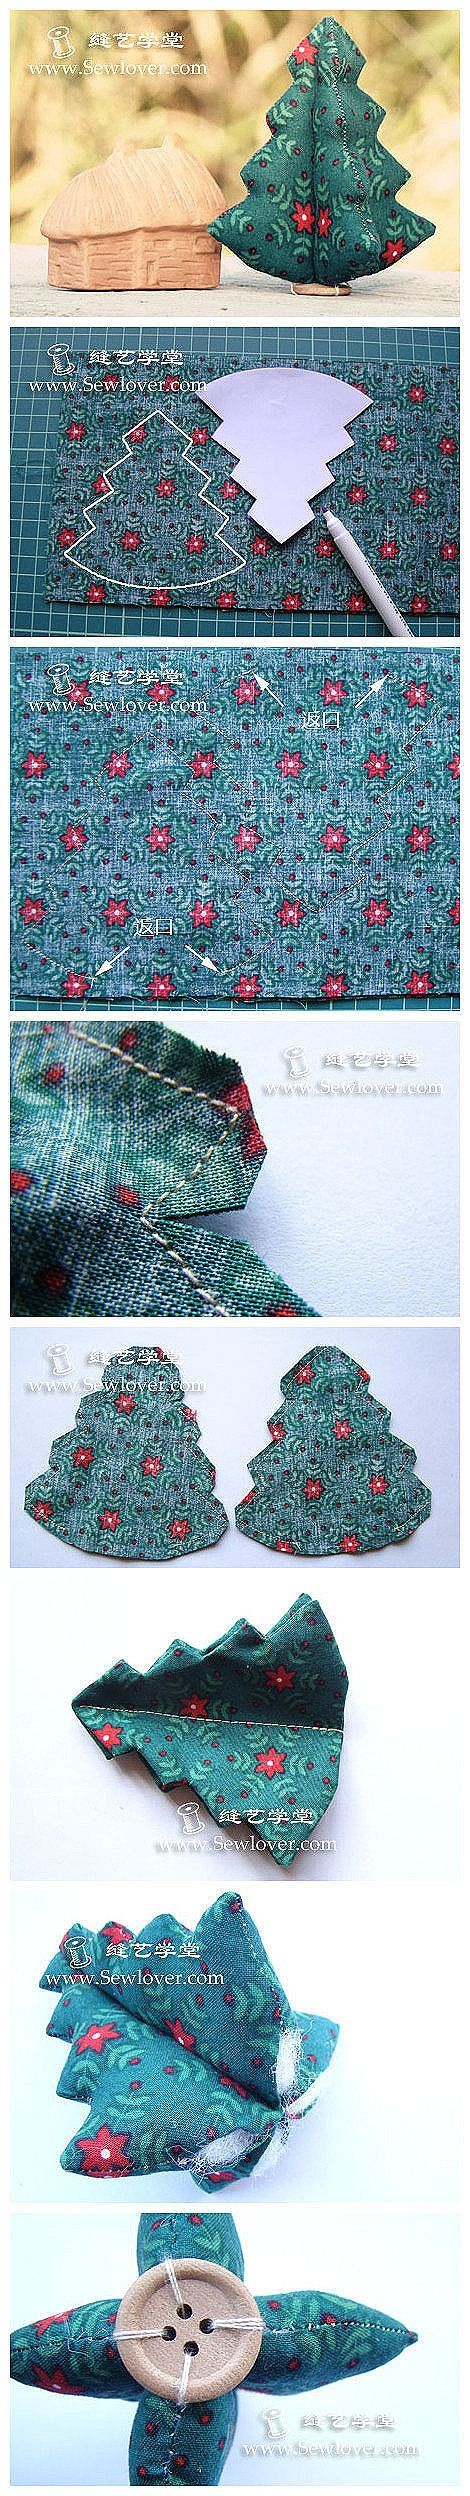 How to sew cute fabric christmas trees step by step diy tutorial how to sew cute fabric christmas trees step by step diy tutorial instructions how to how to do diy instructions crafts do it yourself pinterest solutioingenieria Gallery